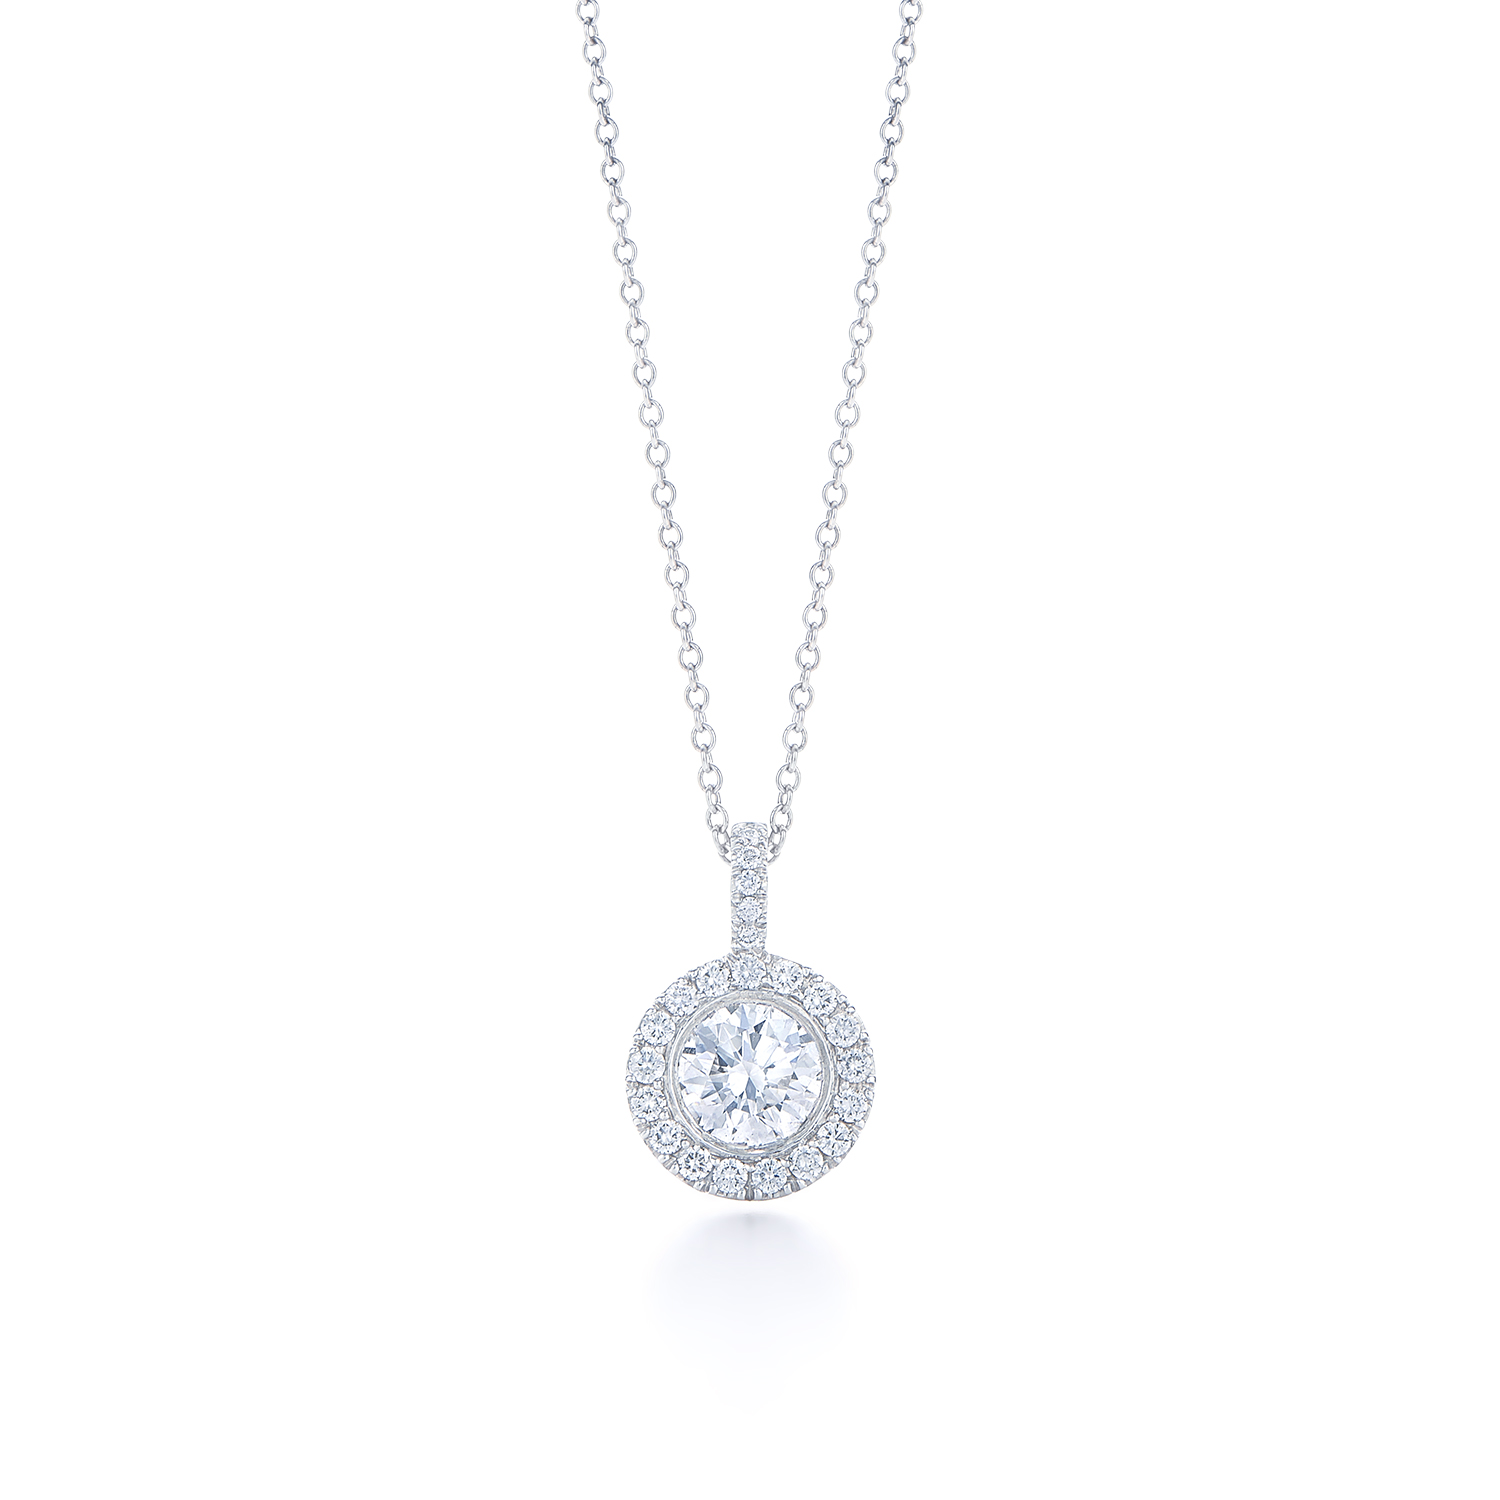 image gold necklace one from avanti womens necklaces white diamond solitaire carat